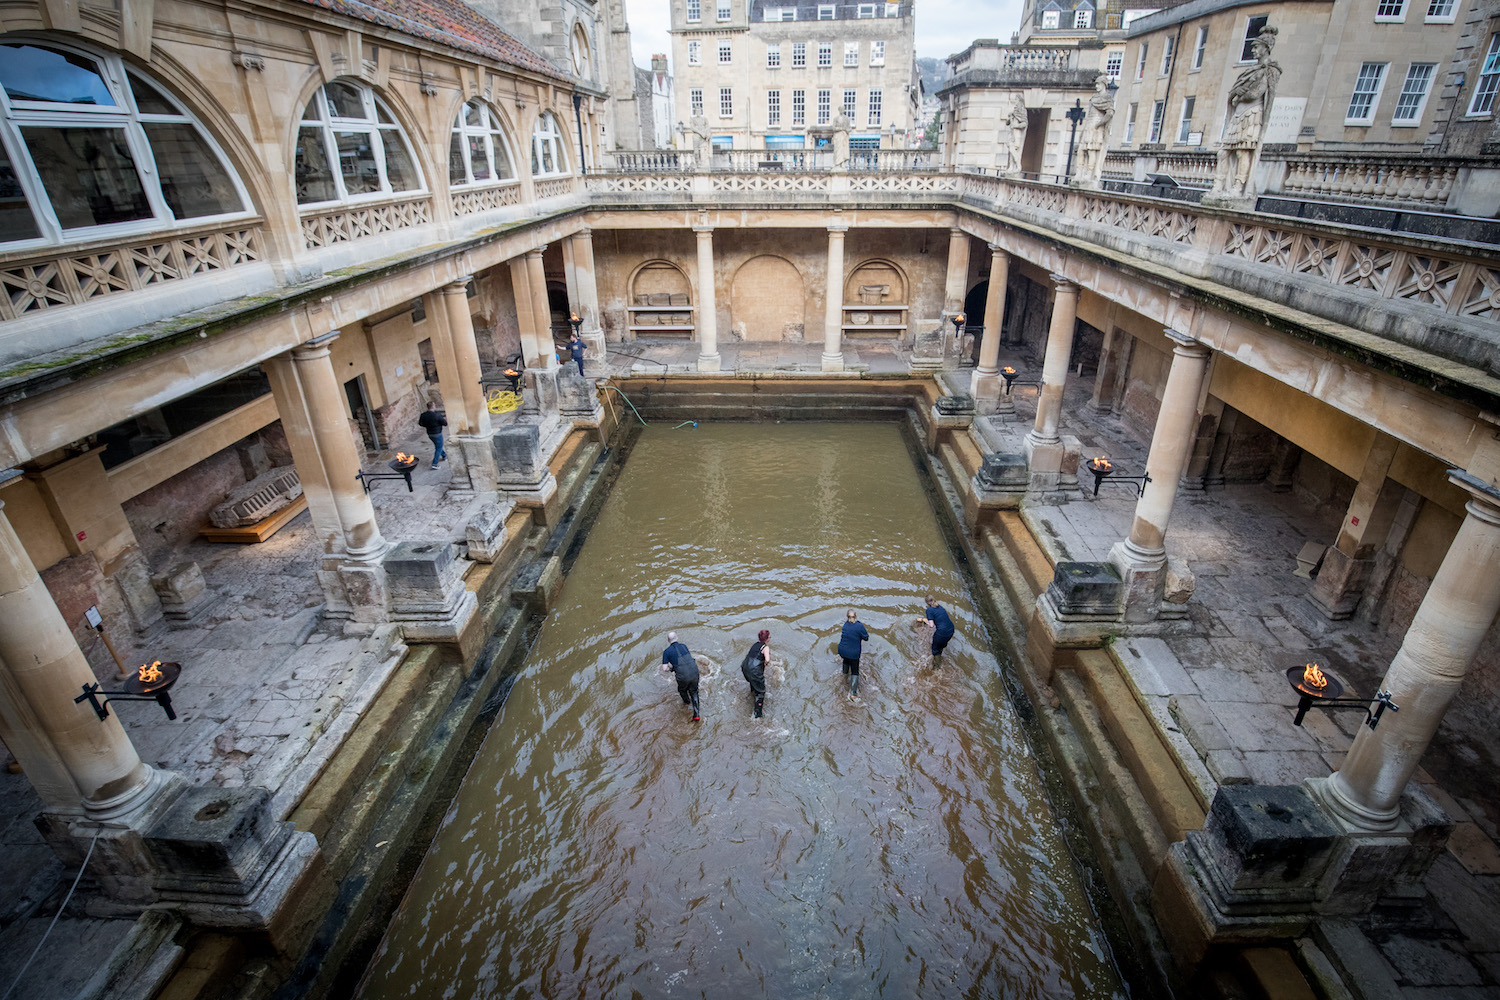 Bath and North East Somerset Council employees brush algae and sludge from the original Roman lead lined floor of the Great Bath as it is drained of 250,000 litres of hot natural thermae spa water as part of a spring cleaning operation, at the historic Roman Baths on March 27, 2018 in Bath, England. Previous cleaning operations, which has to be done regularly to prevent the normally 1.6 metres (5ft) deep baths from becoming murky and to stop algae from growing, have revealed all manners of modern day debris including traffic cones, shopping trolleys and even a moped. Sited below modern street level the Roman Baths built in AD76 and which take water from Britain's largest thermal spring, contains one of the best examples of a preserved Roman bath complex in Europe. Accidentally re-discovered in the 1800s, the steps and lead lining of the Great Bath are over 2000 years old and are visited by over one million tourists a year.  (Photo by Matt Cardy/Getty Images)